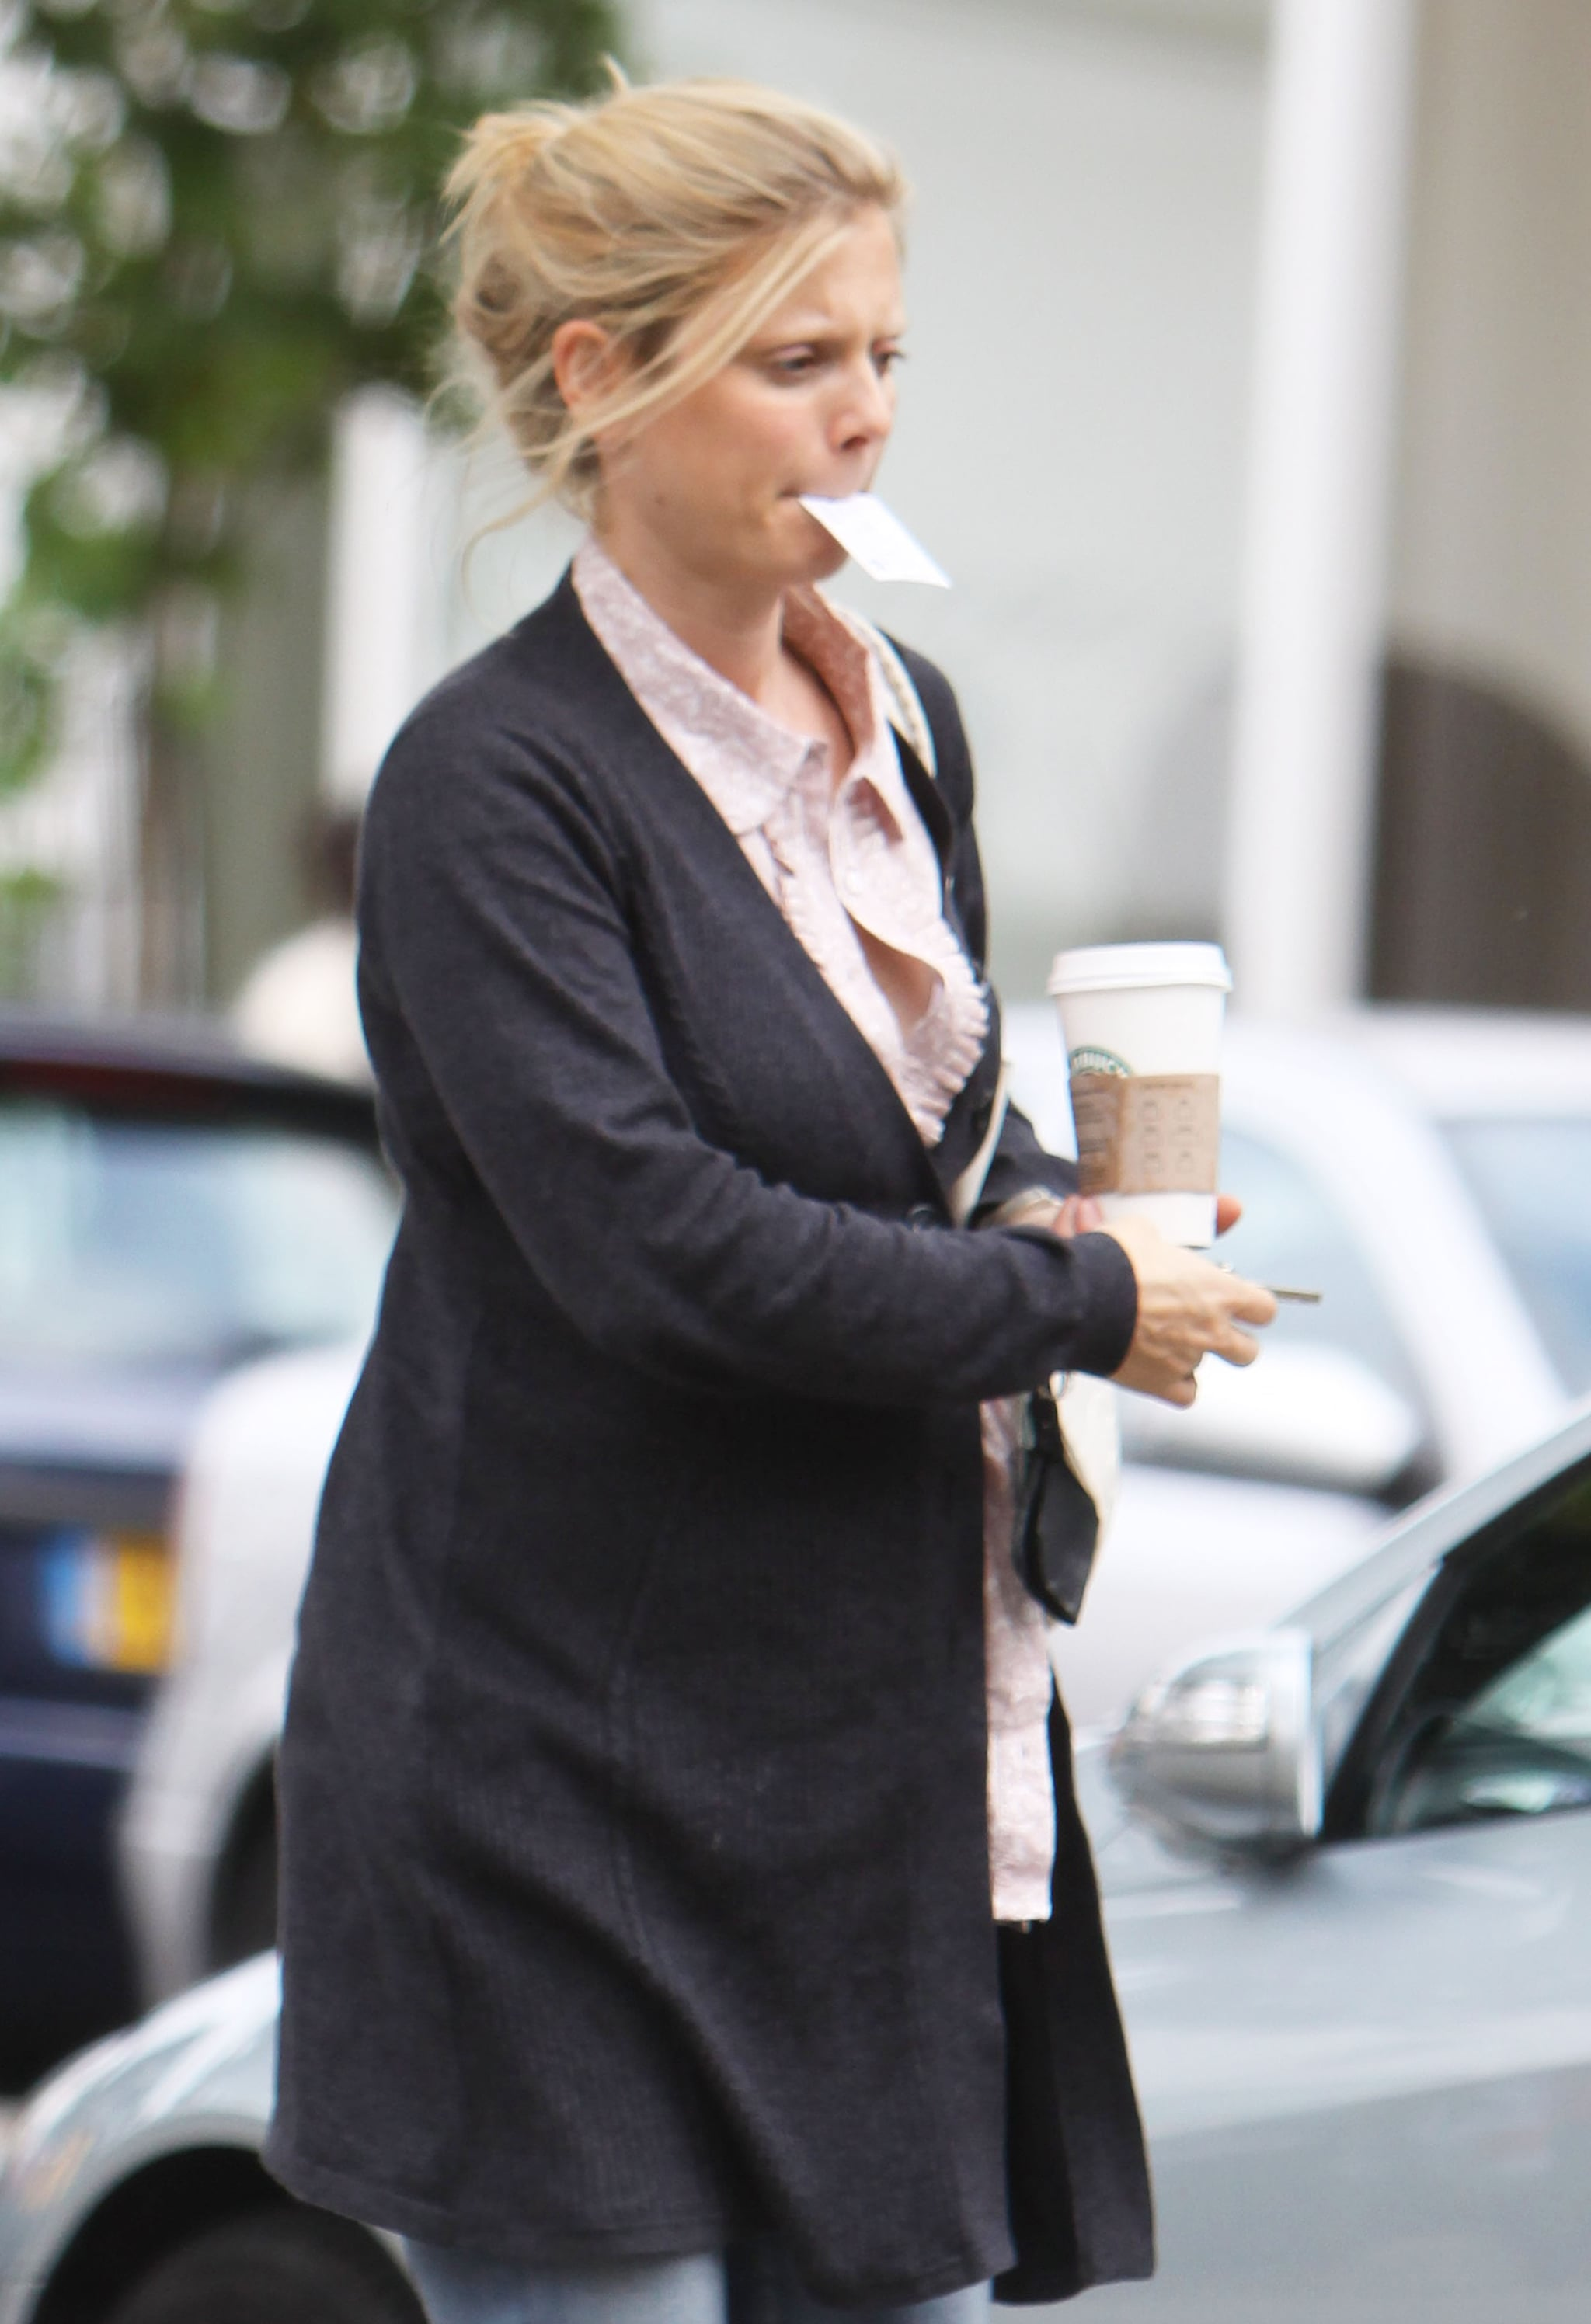 Pictures of Pregnant Emilia Fox | POPSUGAR Celebrity UK